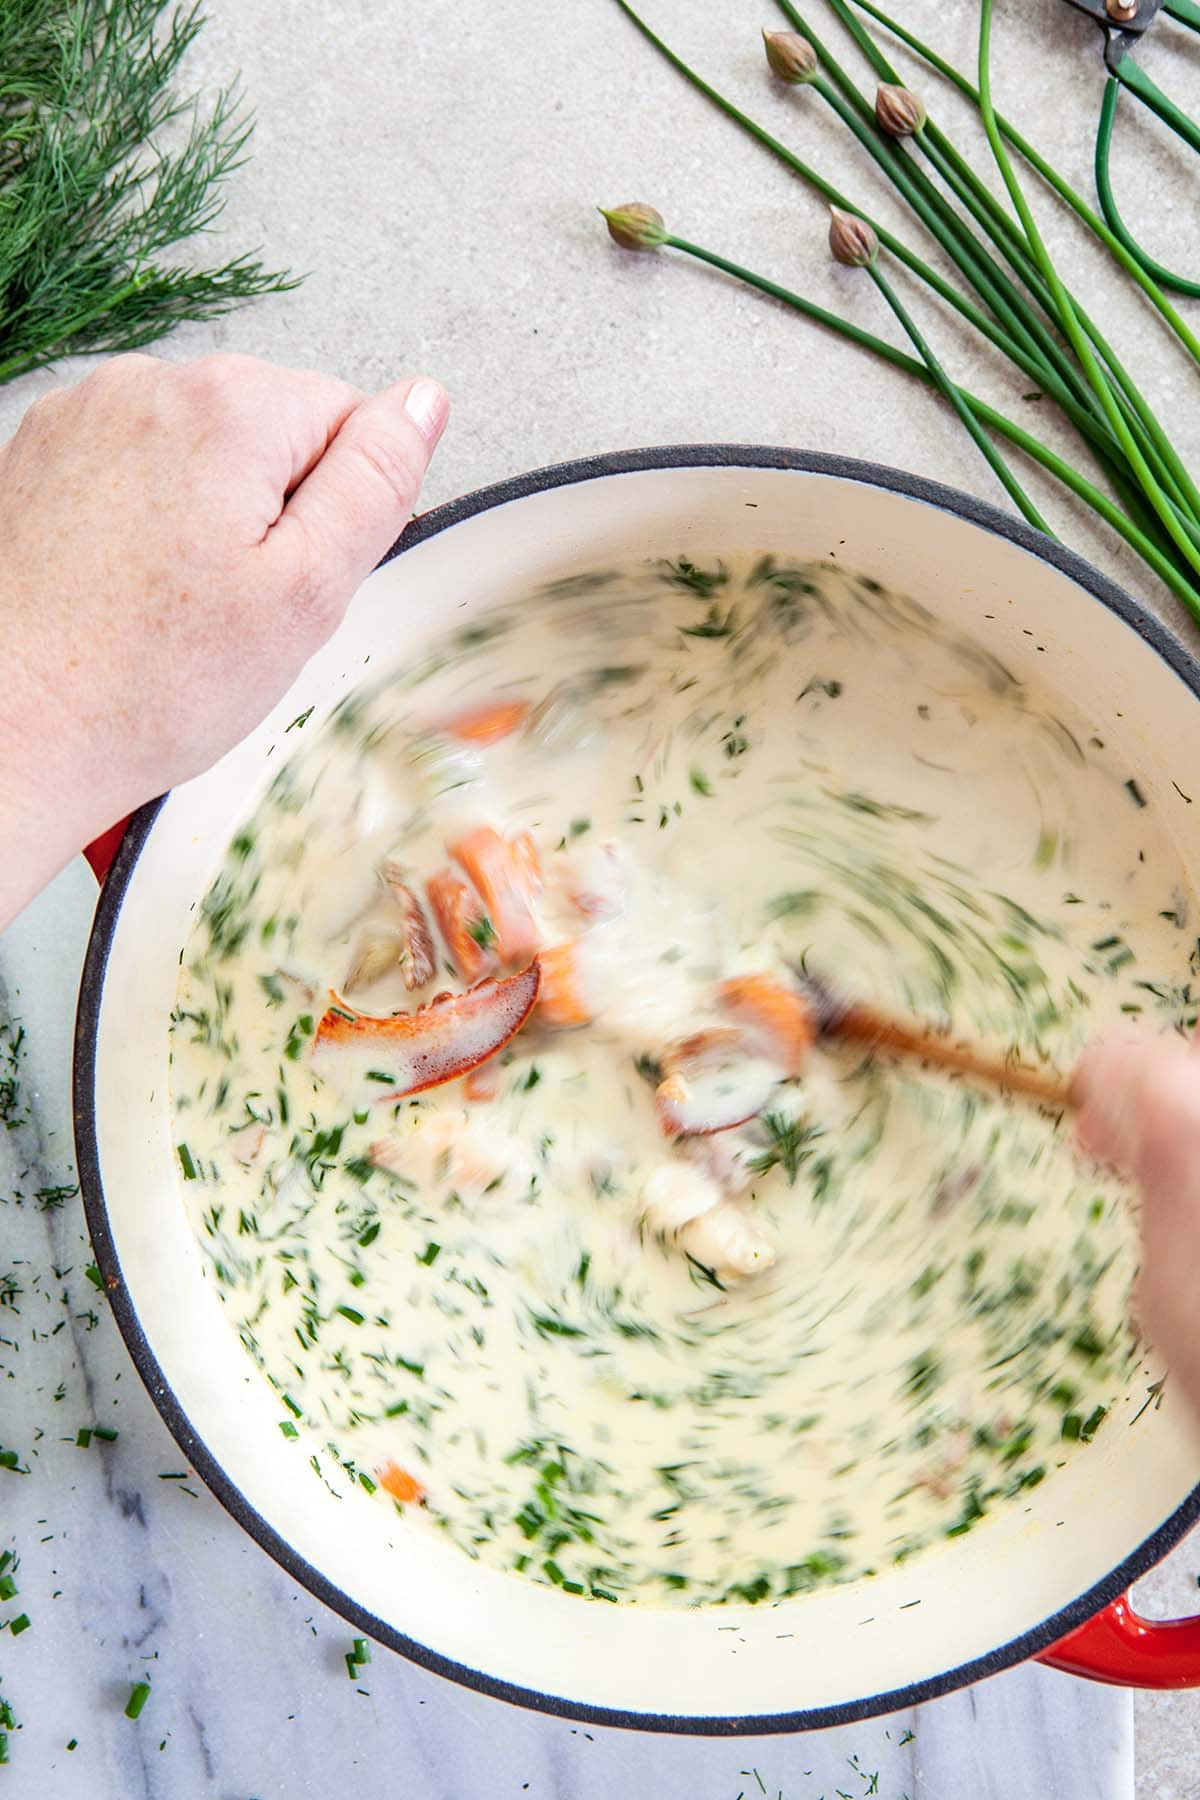 A hand stirring a pot of soup on a amrble surface with chopped dill and chives nearby.